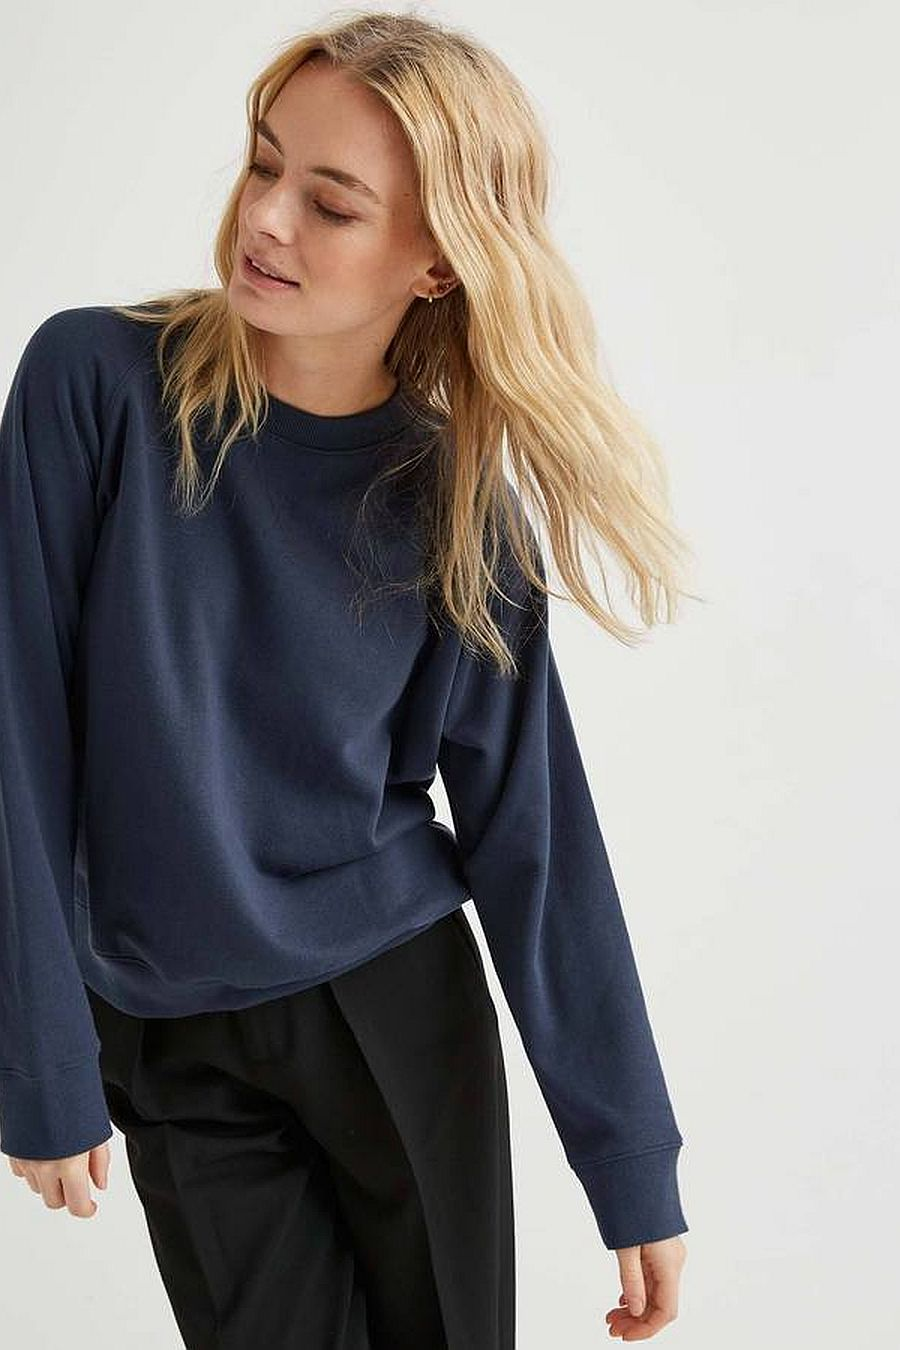 Richer Poorer Fleece Sweatshirt - Blue Nights